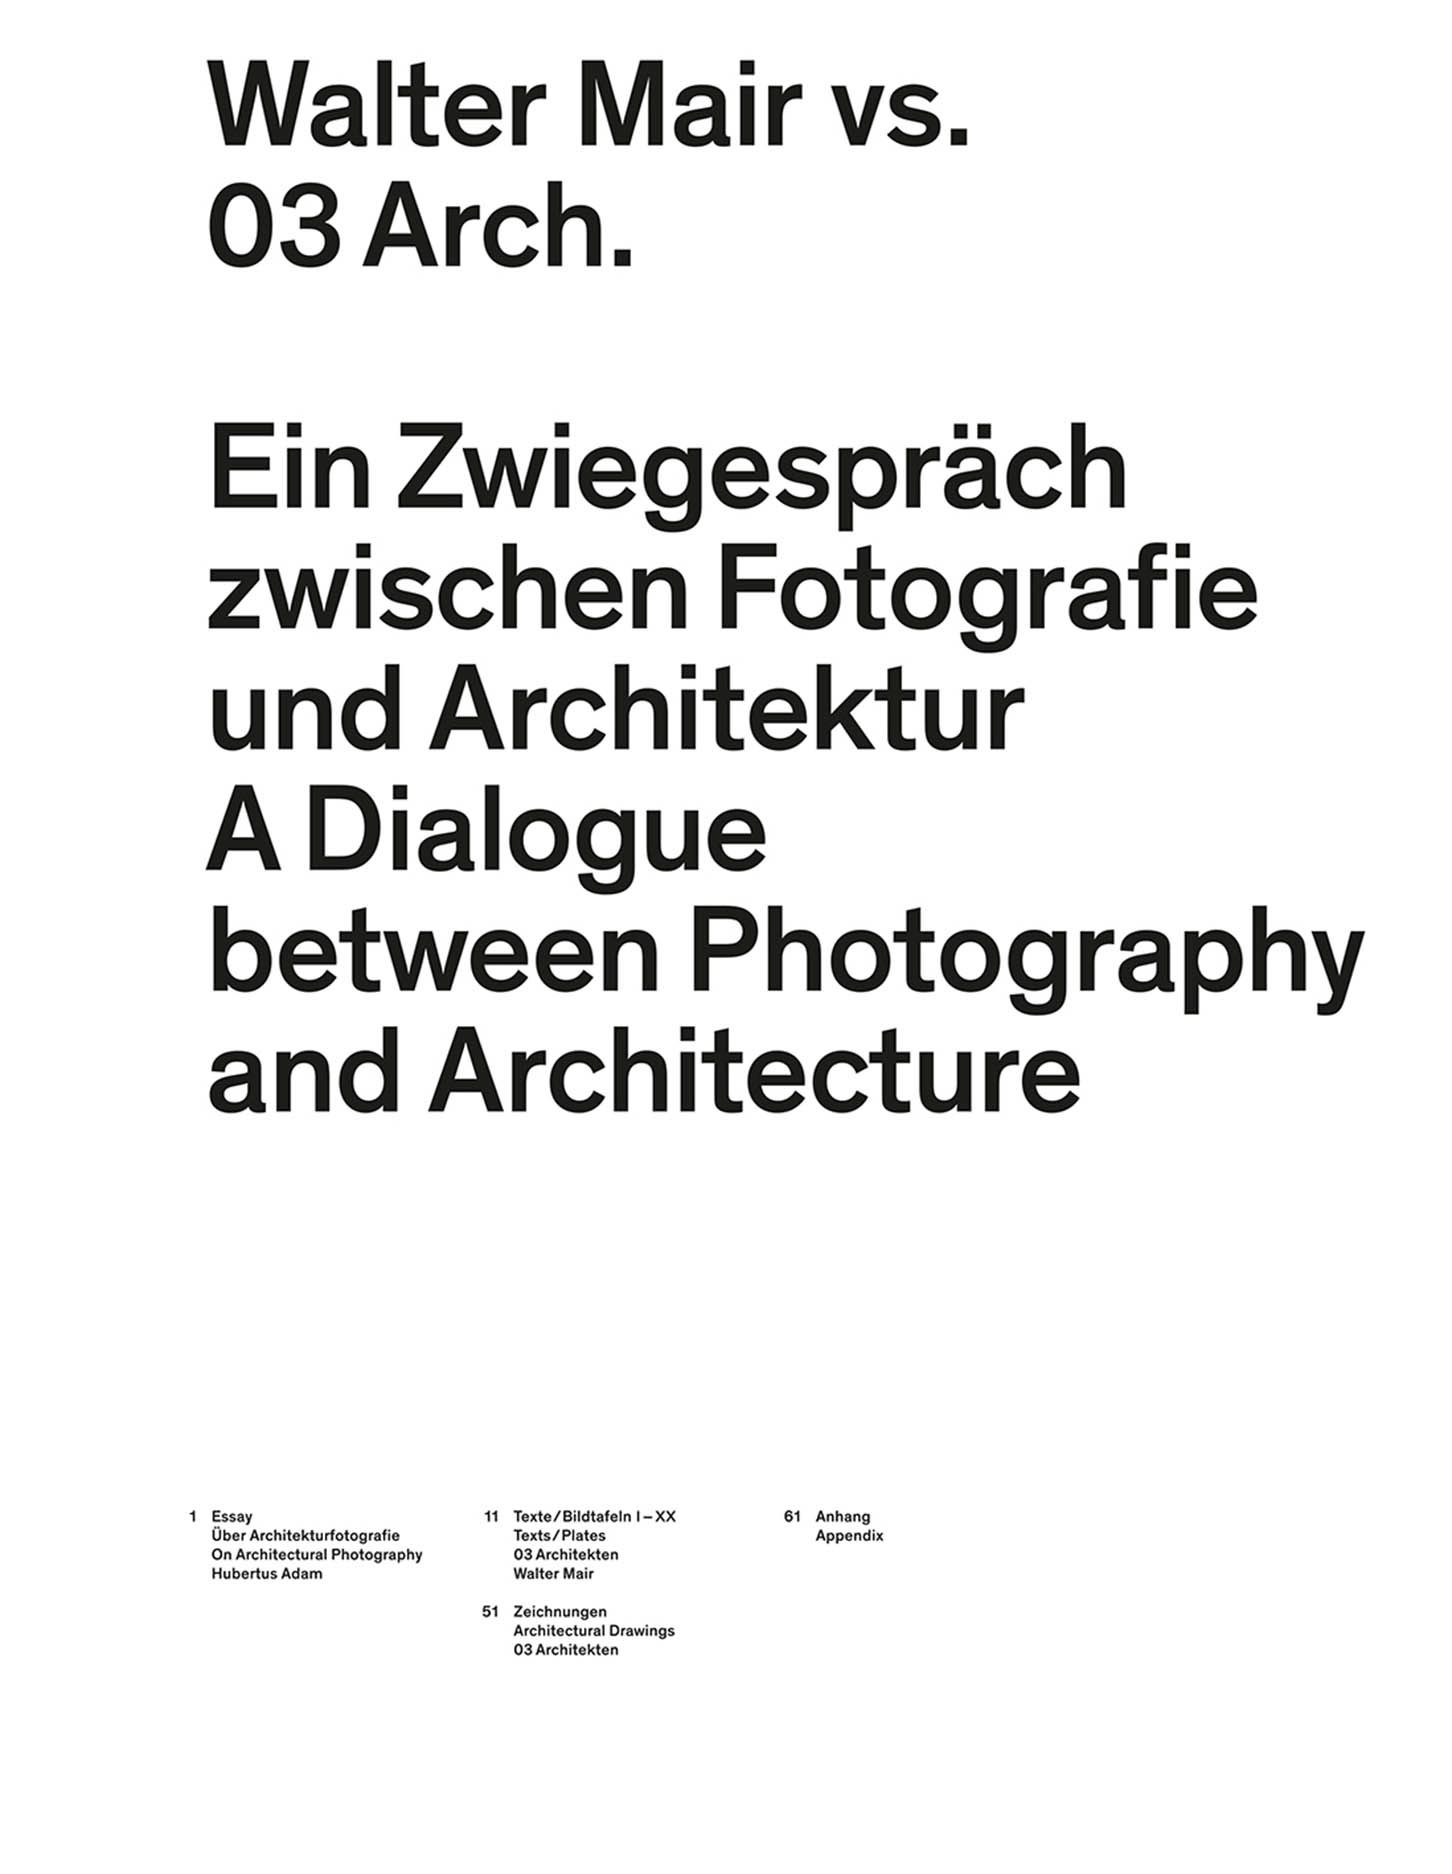 Walter Mair vs. 03 Architects: A Dialogue Between Photography and Architecture